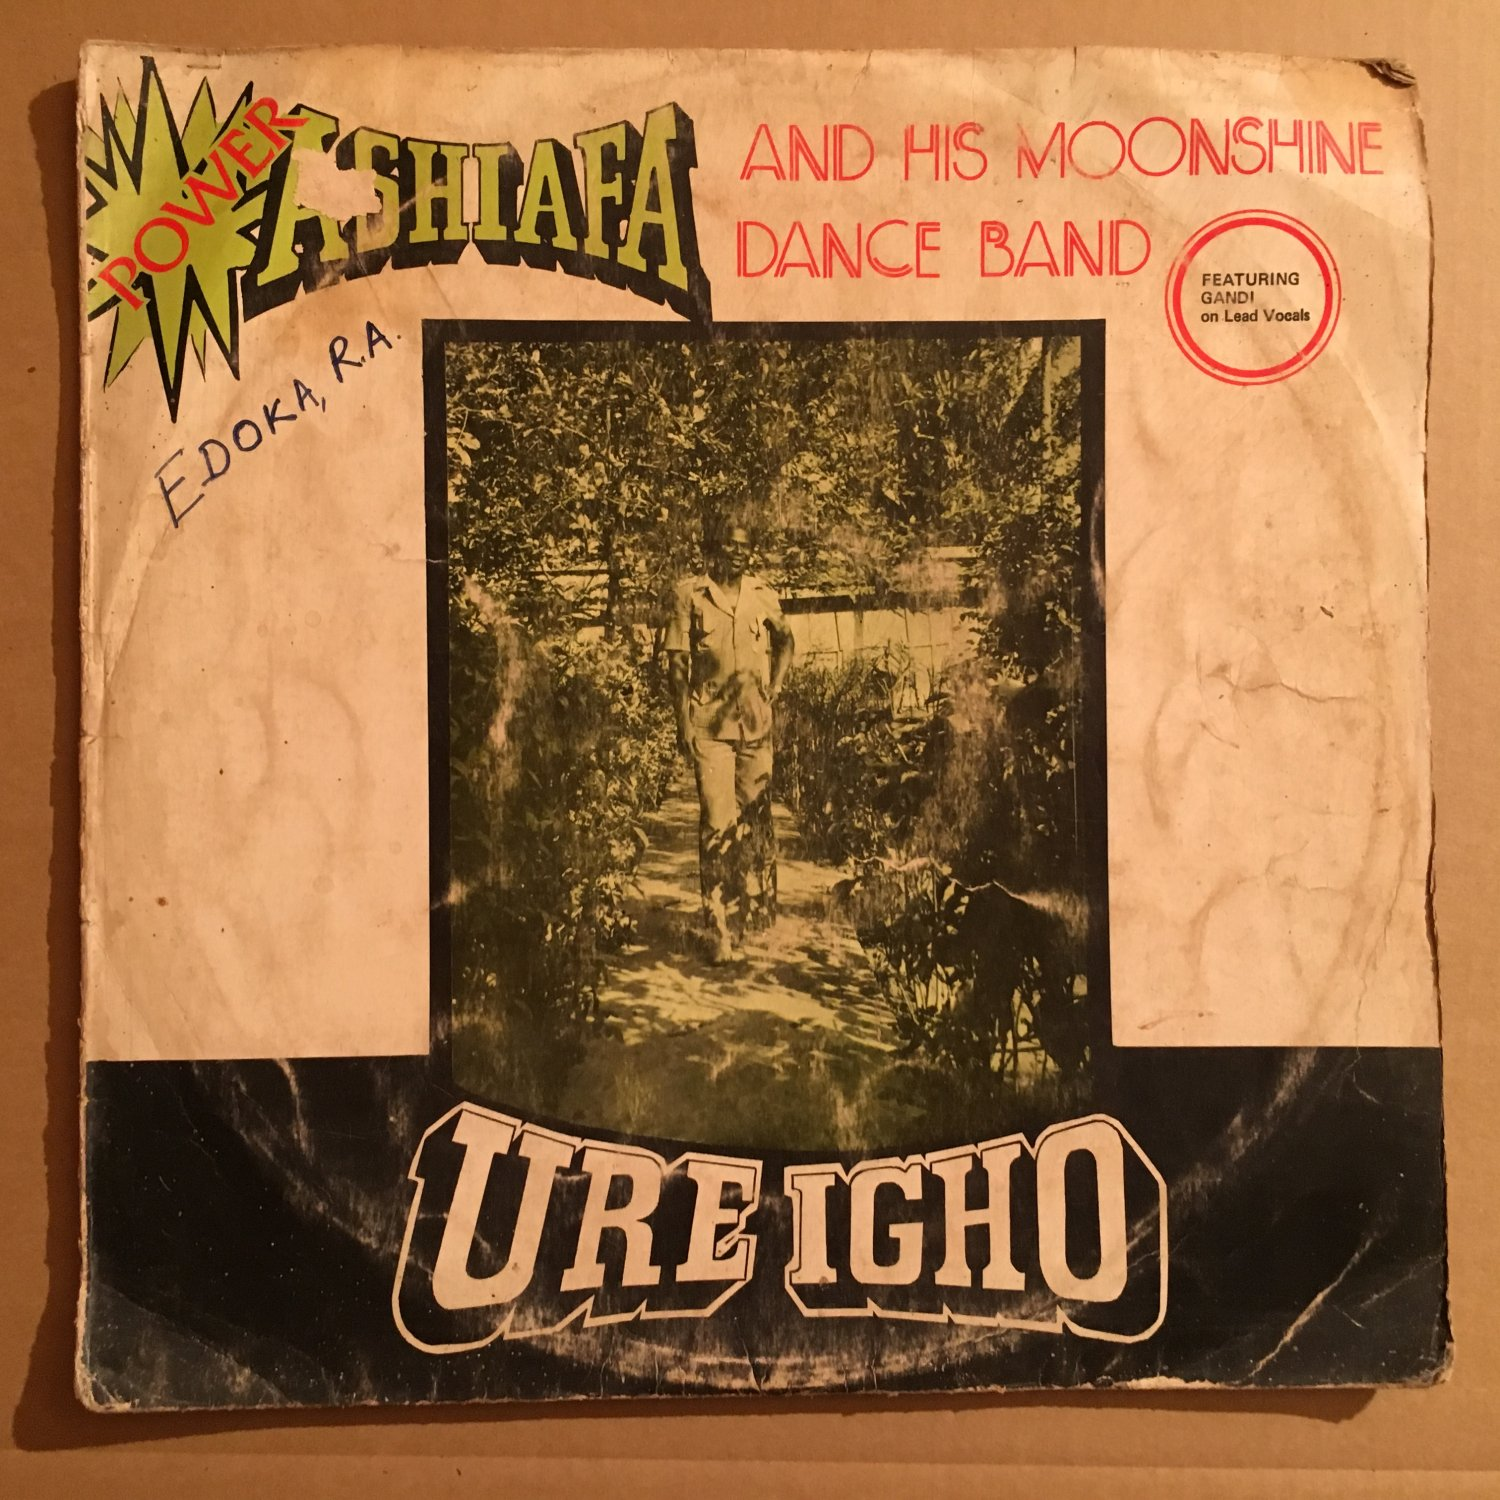 POWER ASHAFIA & HIS MOONSHINE DANCE BAND LP ure igho NIGERIA mp3 LISTEN